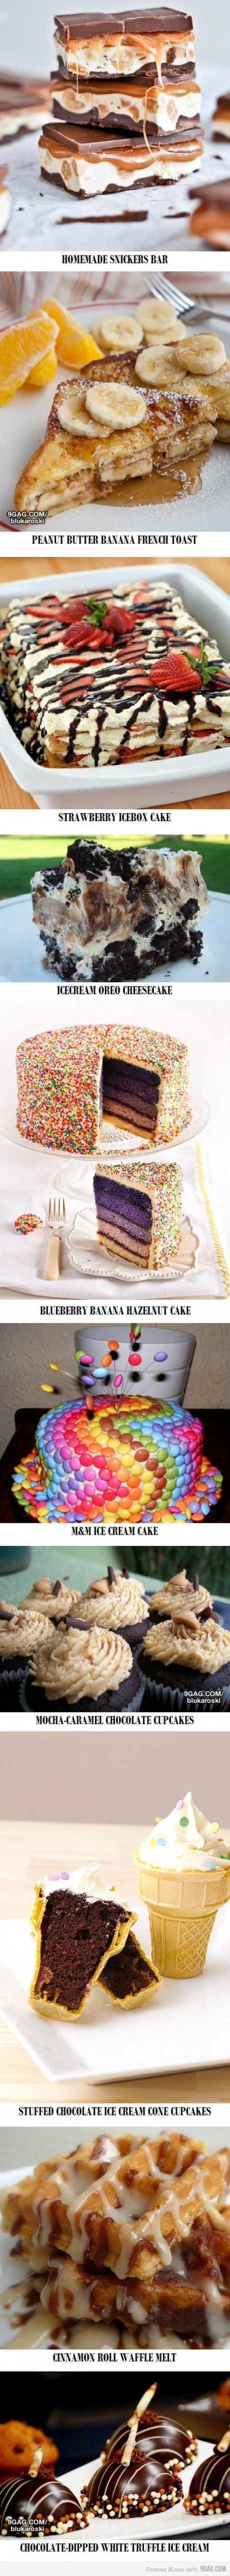 OH MY GOD! If I can make all these desserts I will be a QUEEN!